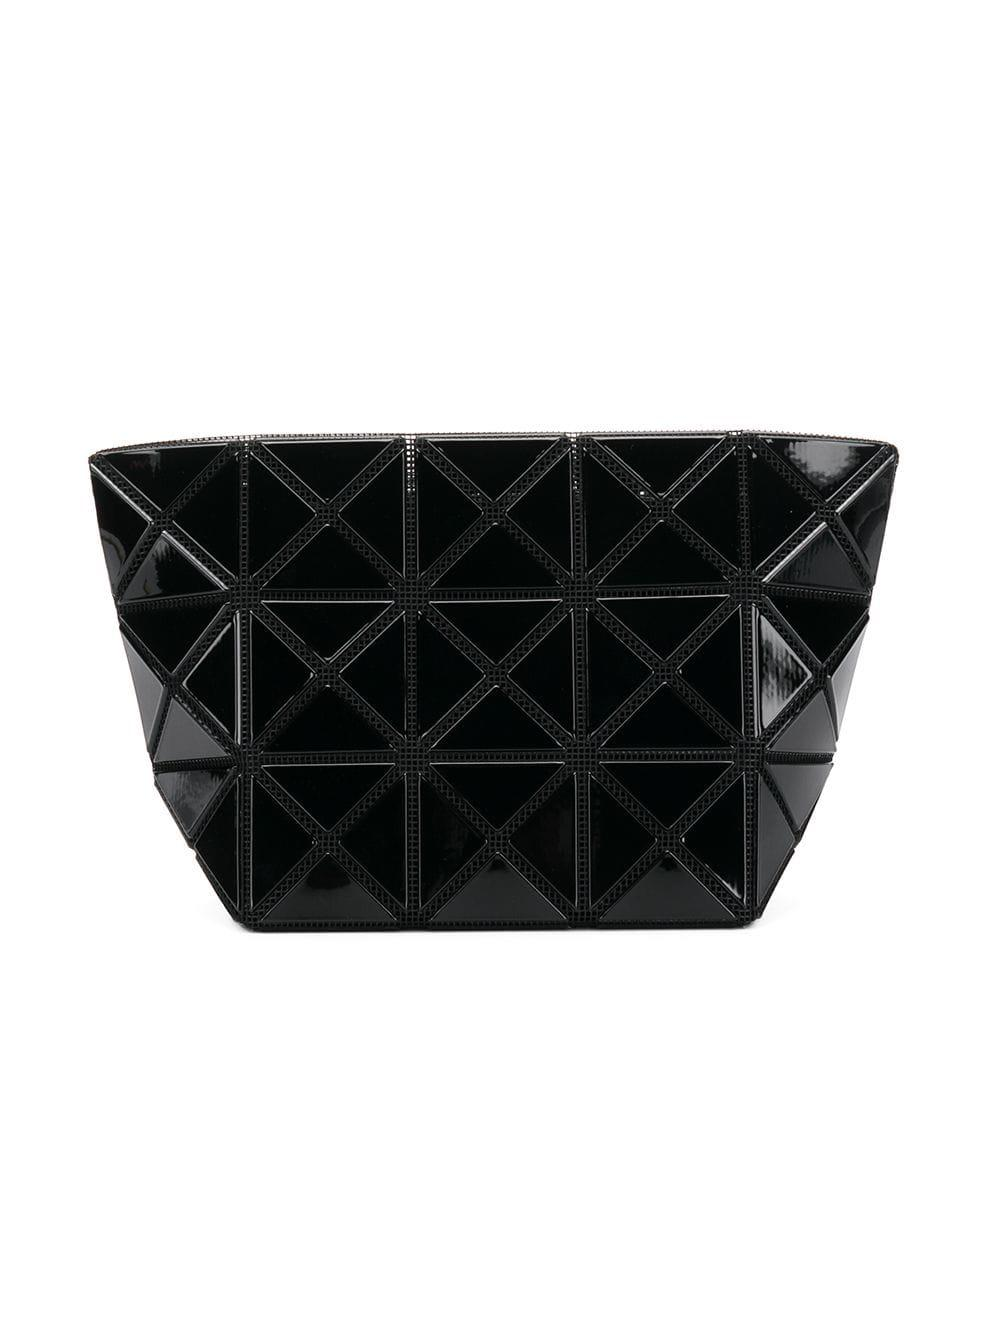 0f422b261c37 Lyst - Bao Bao Issey Miyake Lucent Frost Make Up Bag in Black - Save 6%